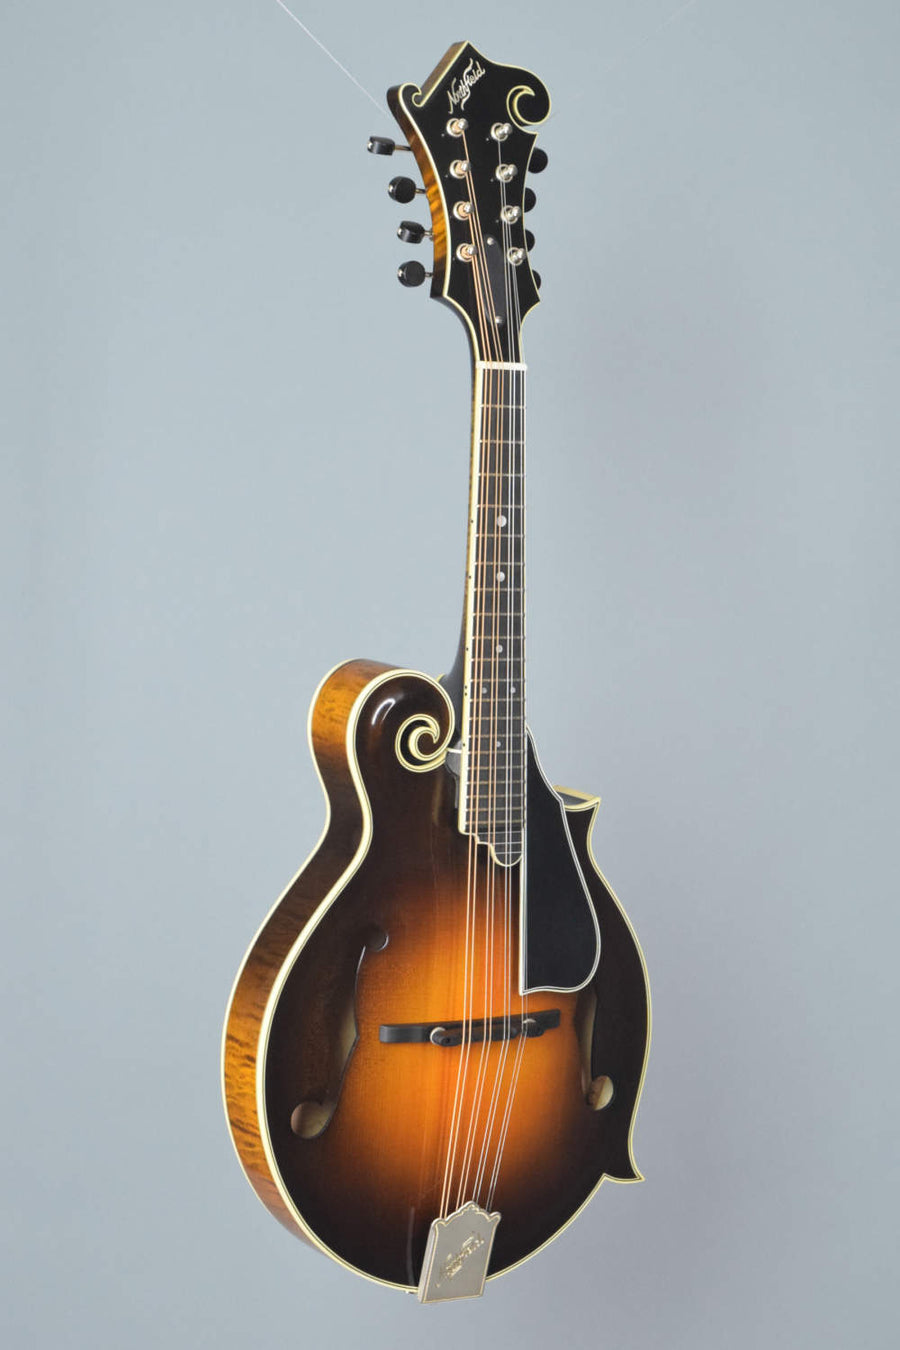 Northfield Artist Series 2-Bar Bracing (Variation 2)w/ Engelmann Top (Shopworn)